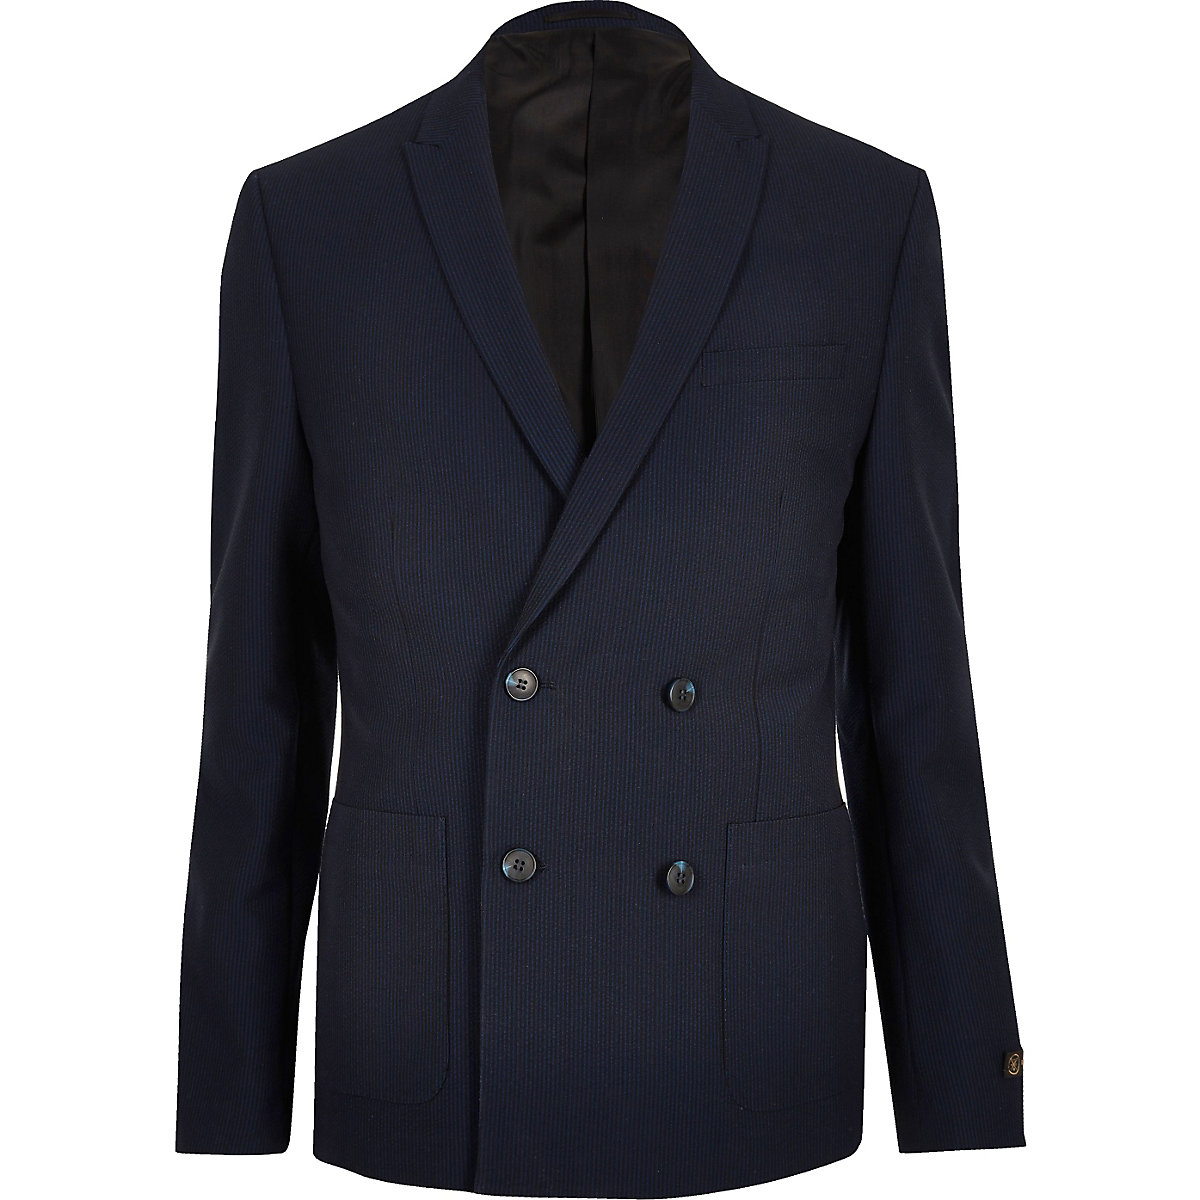 Navy double breasted seersucker suit jacket